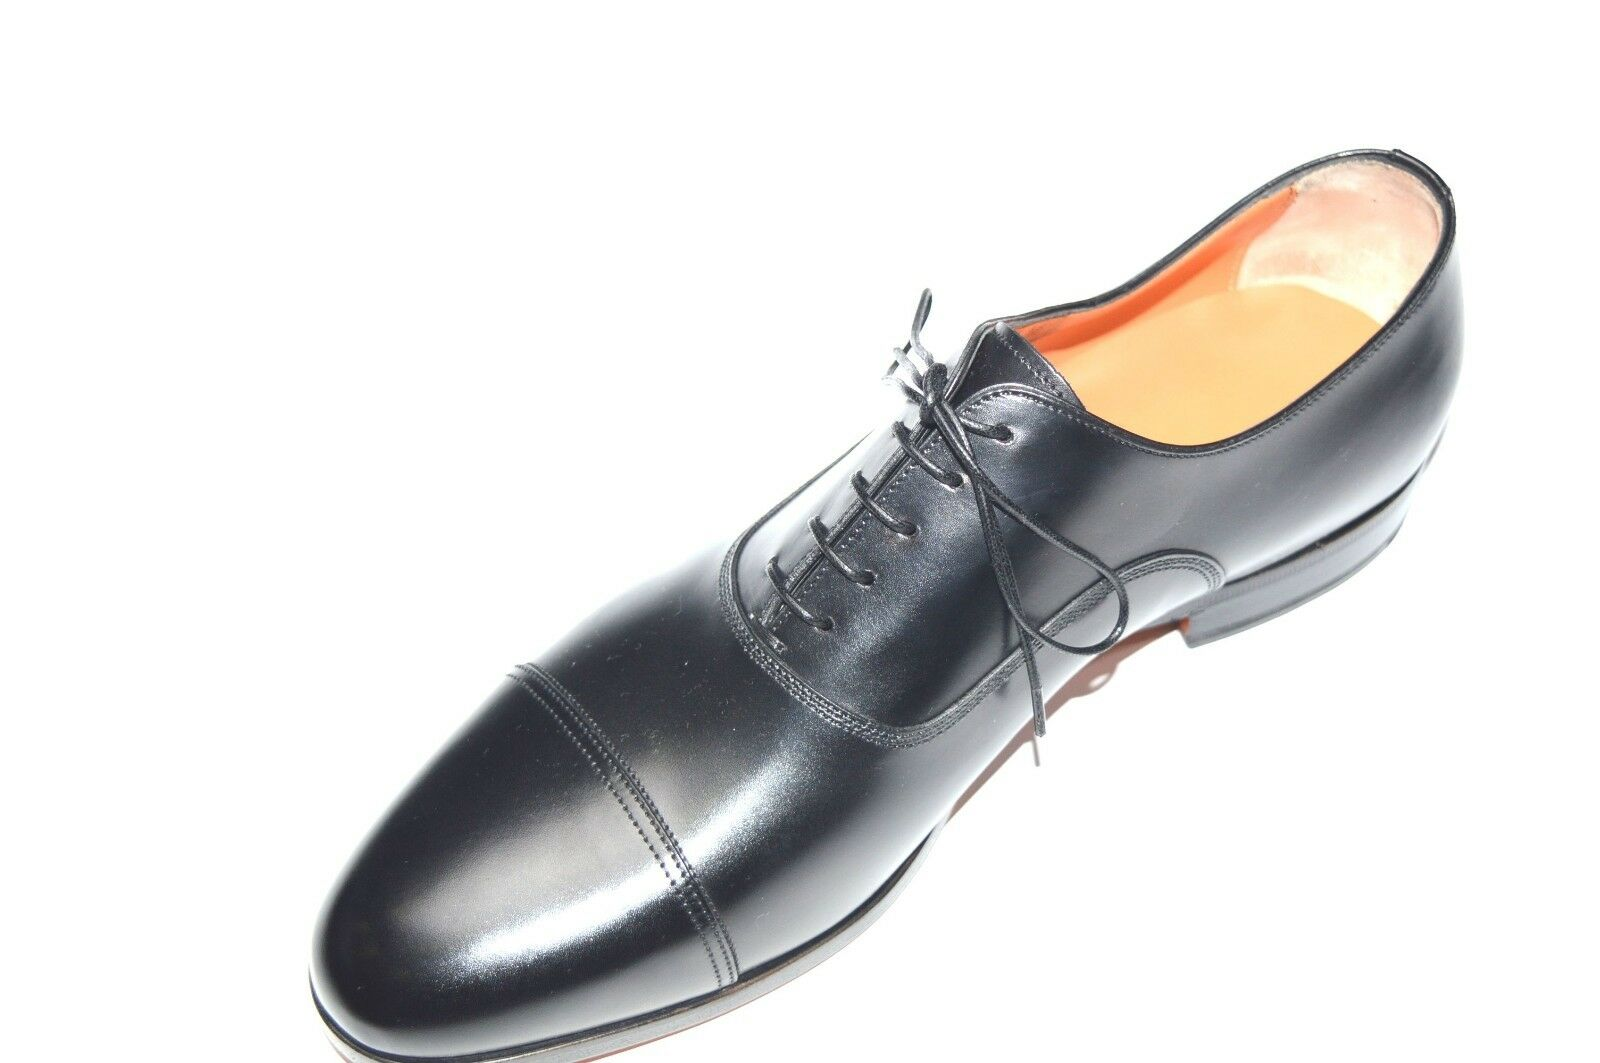 NEW SANTONI SANTONI SANTONI Dress Black Leather shoes  SIZE Eu 44 Uk 10 Us 11 (29R) f7c67e